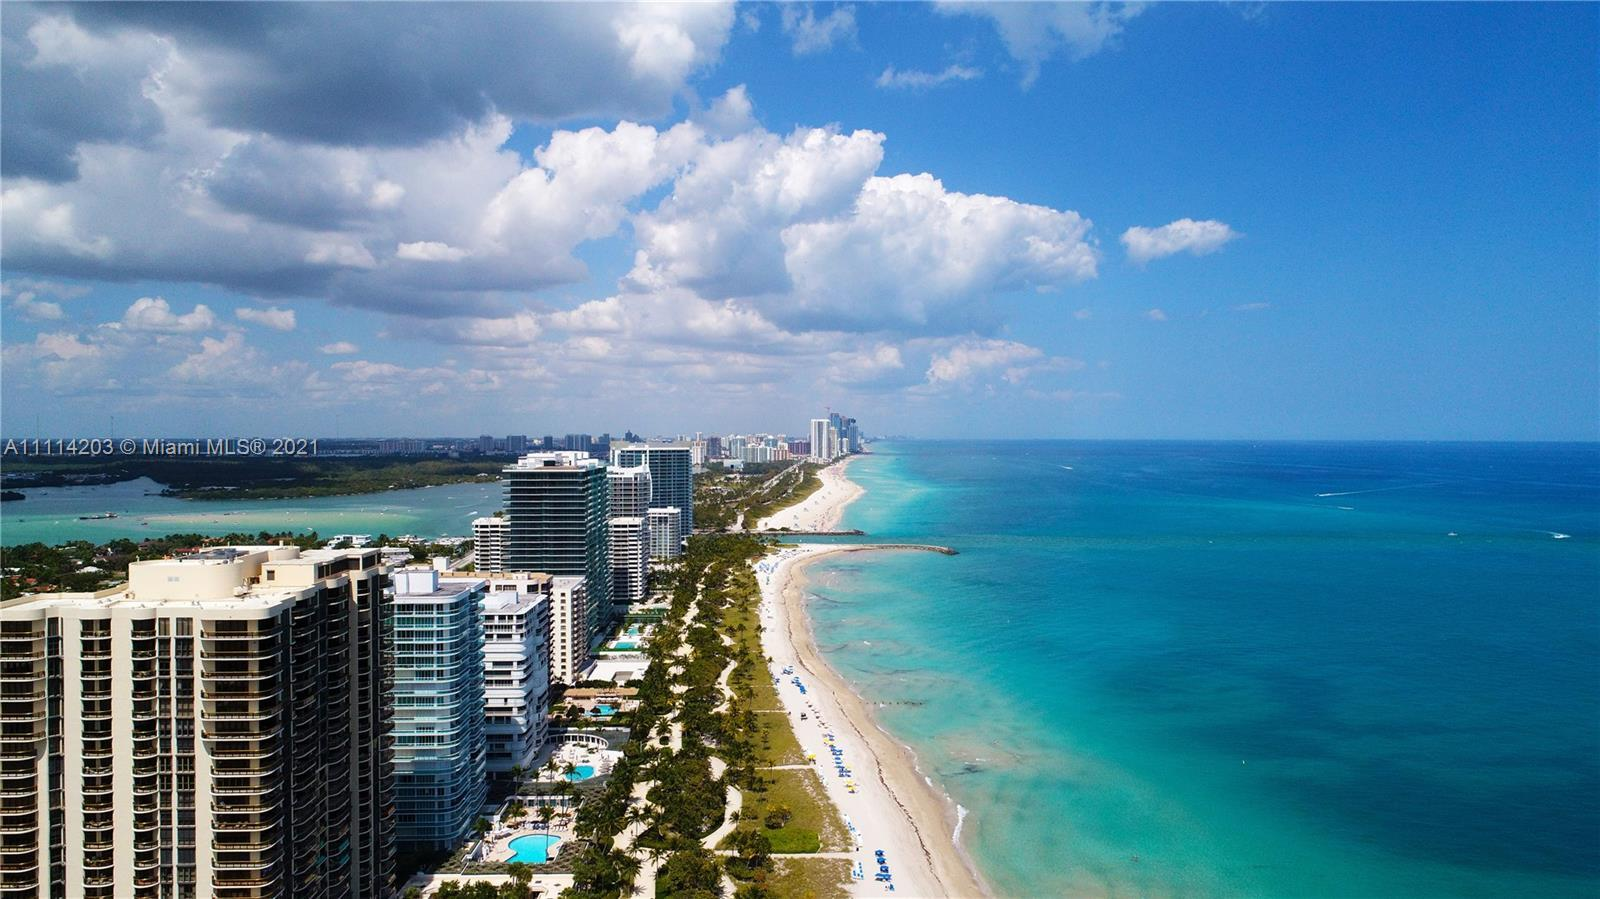 MAGNIFICENT OCEANFRONT CONDO IN BAL HARBOR AREA, STEPS AWAY FROM THE RENOUND BAL HARBOR MALL, VENETI